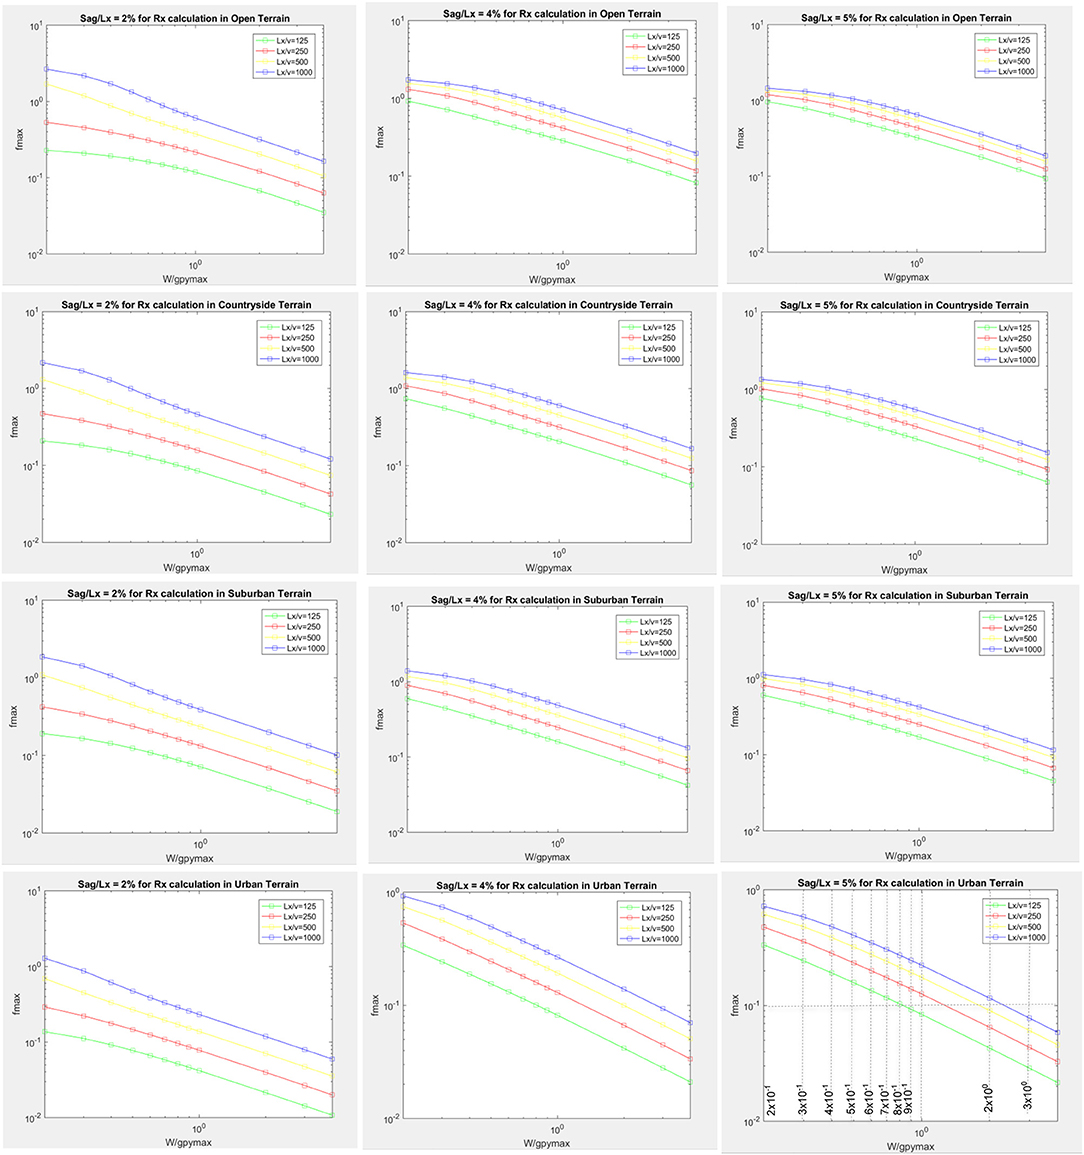 Frontiers | Evaluation of Peak Transmission Line Conductor Reactions